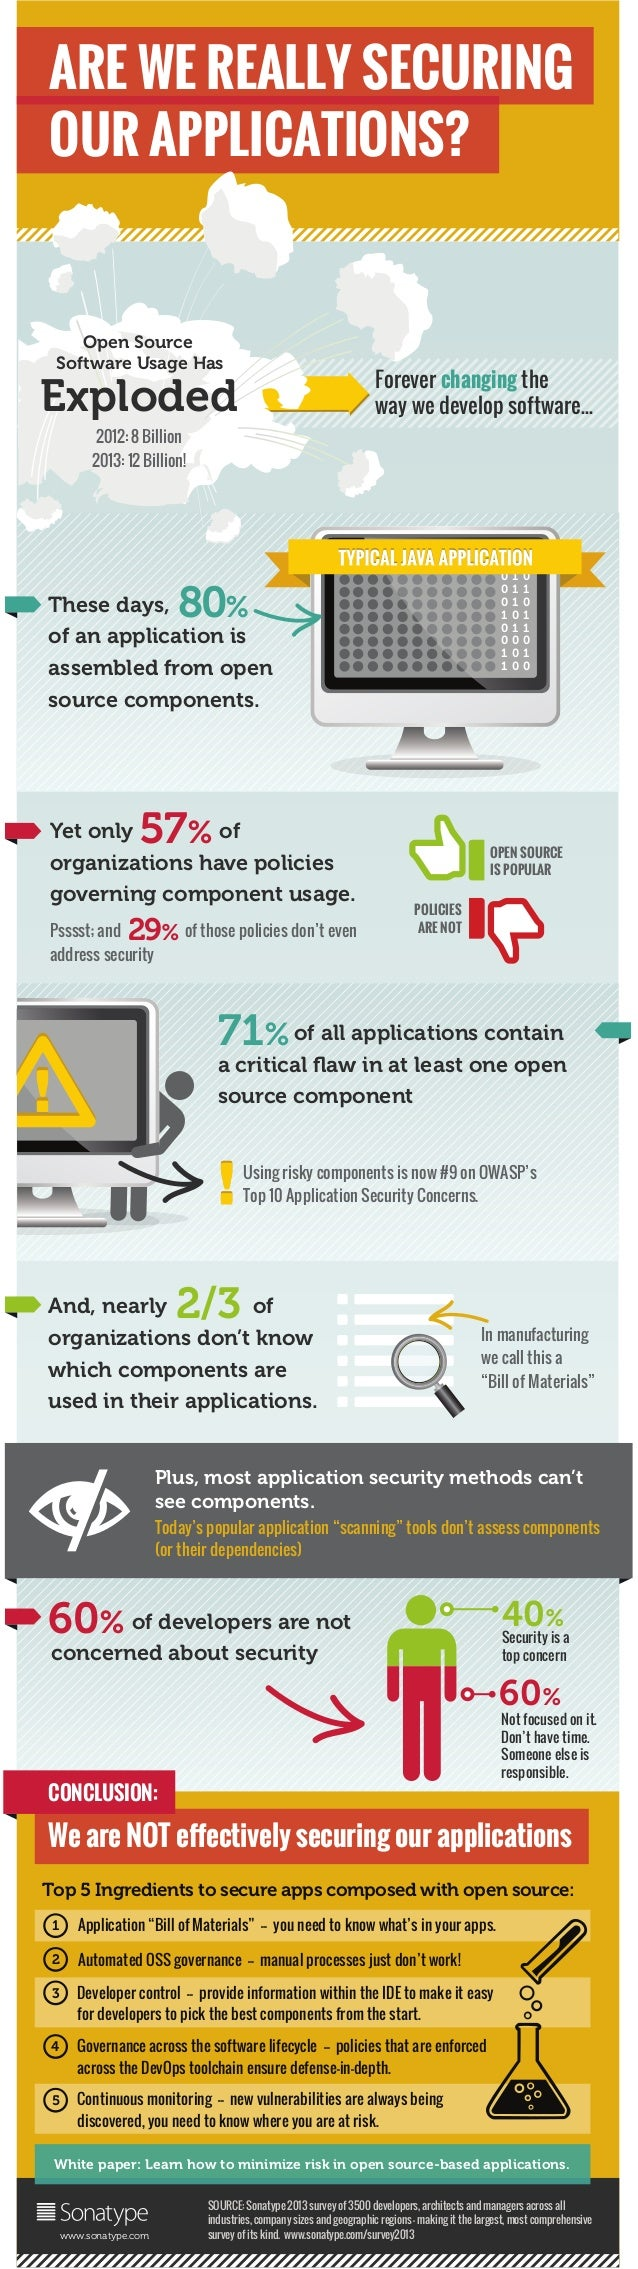 ARE WE REALLY SECURING OUR APPLICATIONS? 0 1 0 1 1 0 1 0 0 0 0 1 0 0 1 1 1 1 1 0 1 0 0 0 These days, of an application is ...